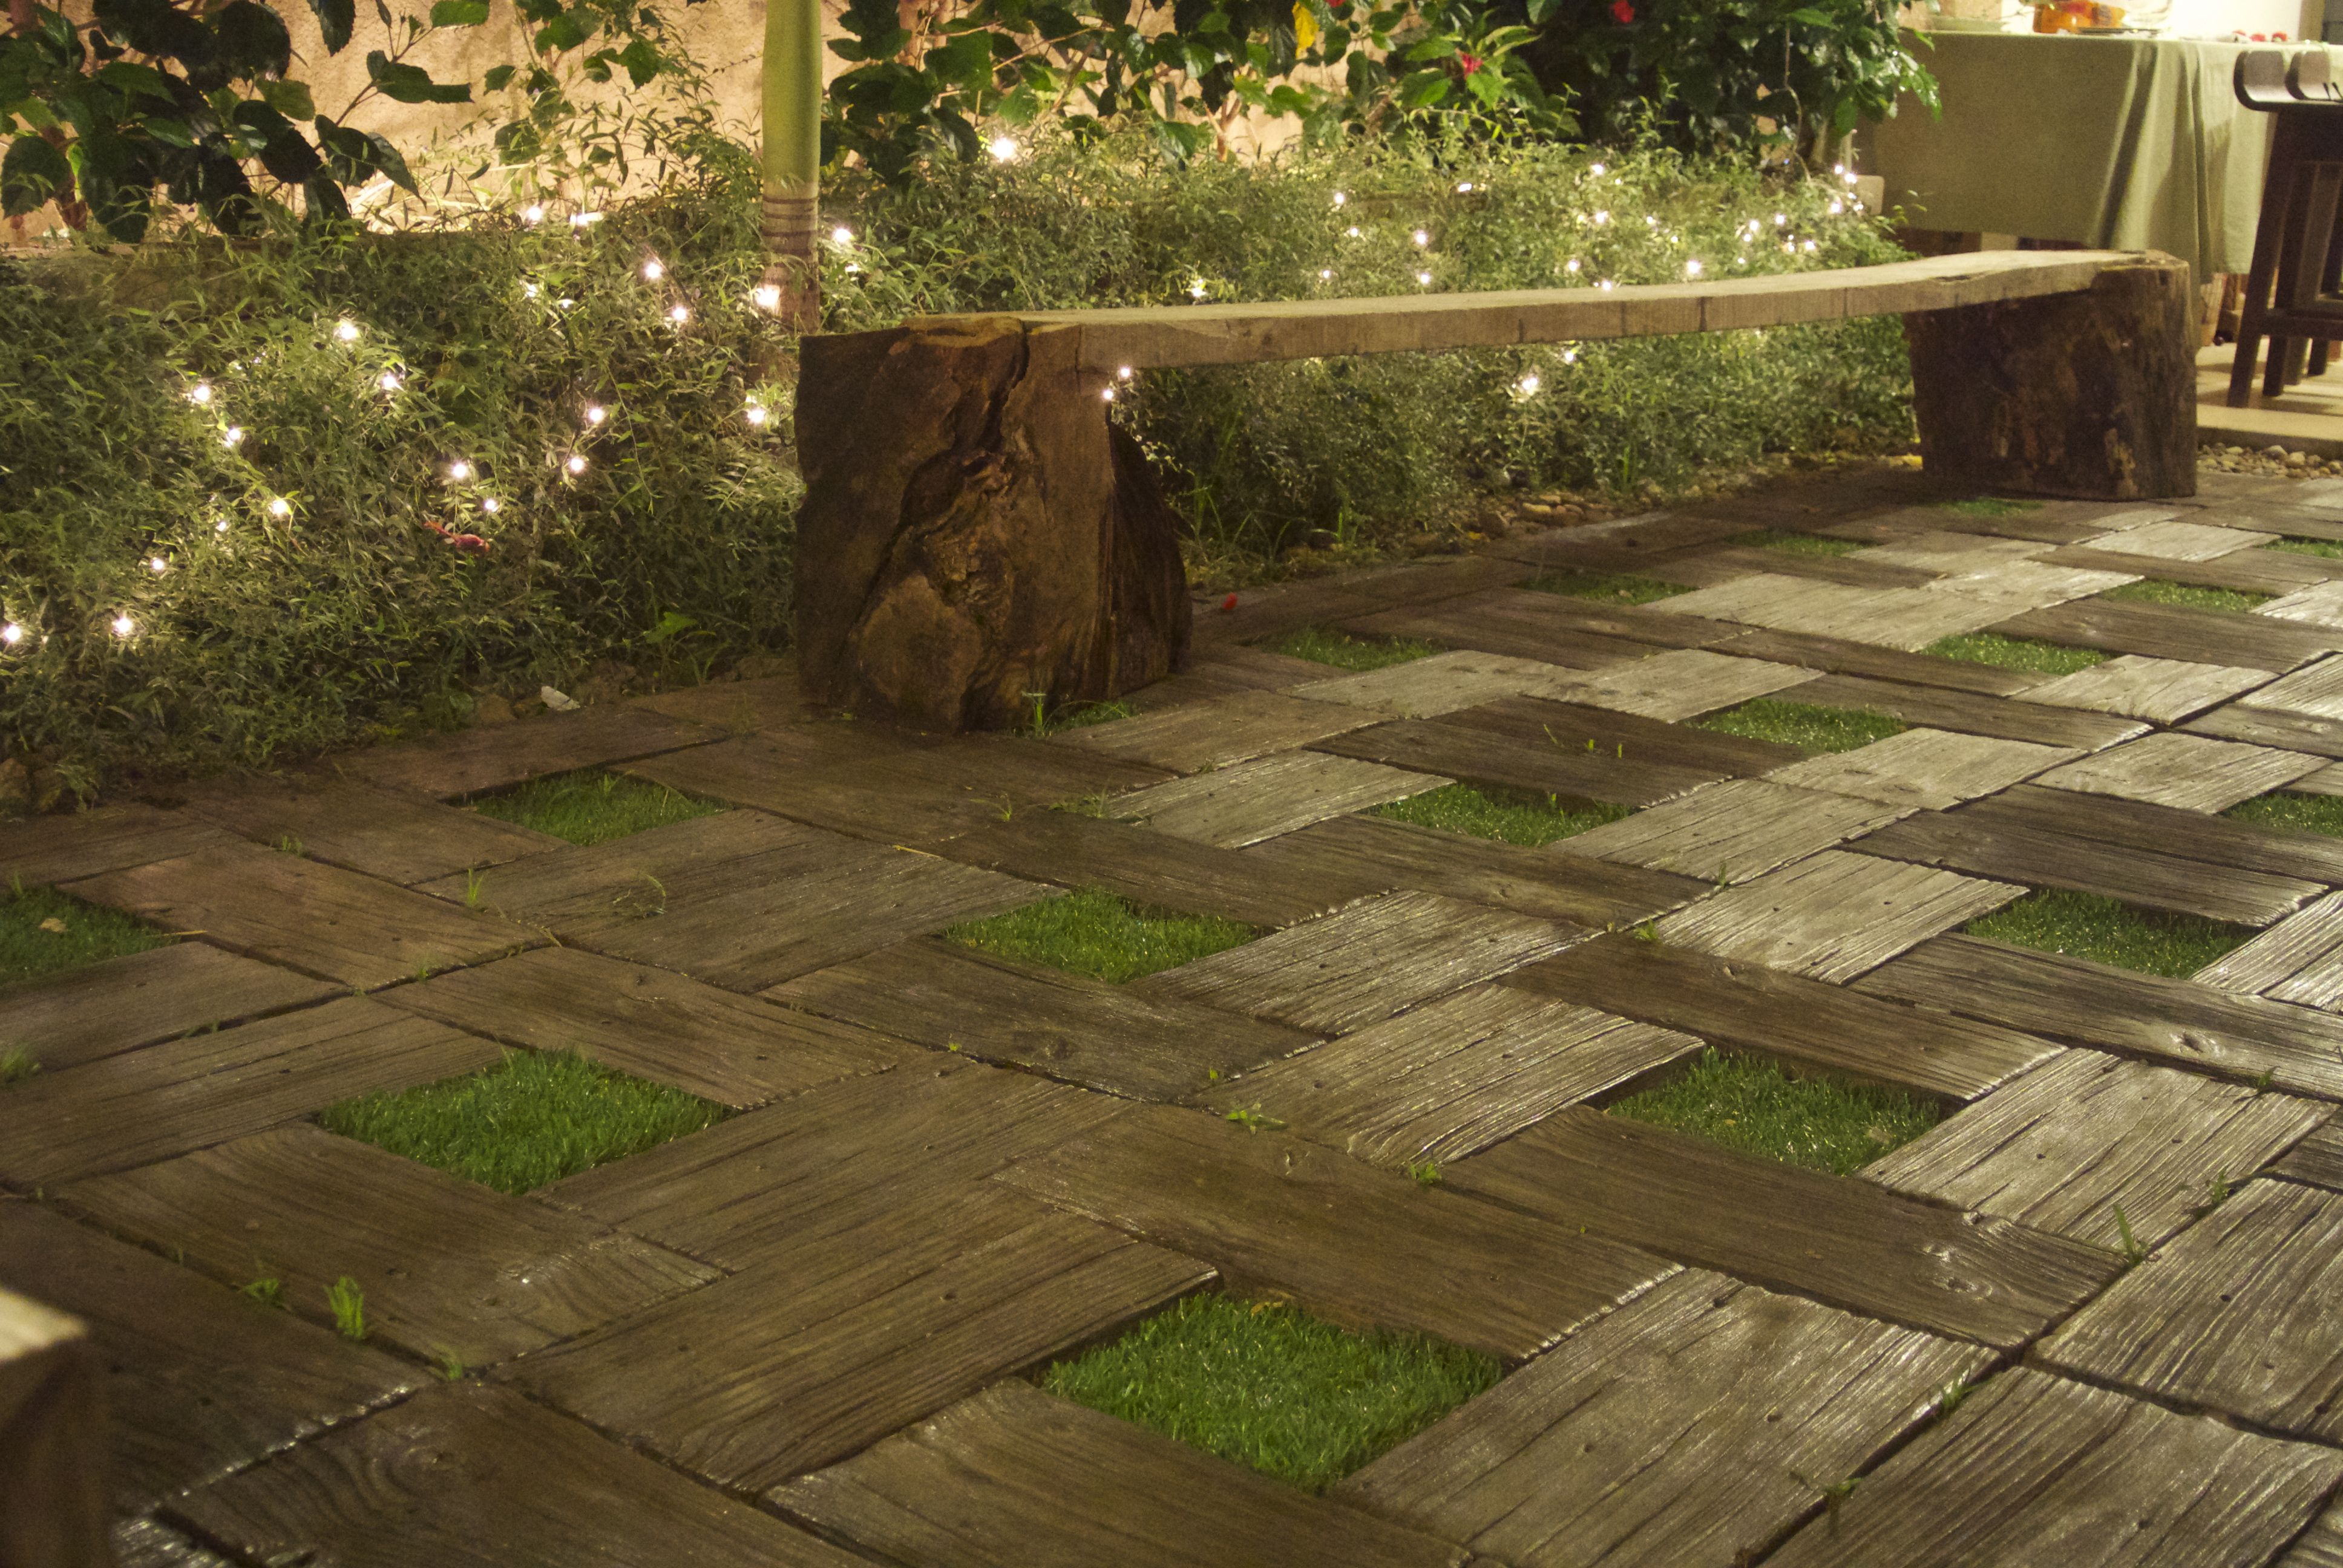 Gfrc Wood Paneles For Garden Flooring With 20x20cm Open Space In